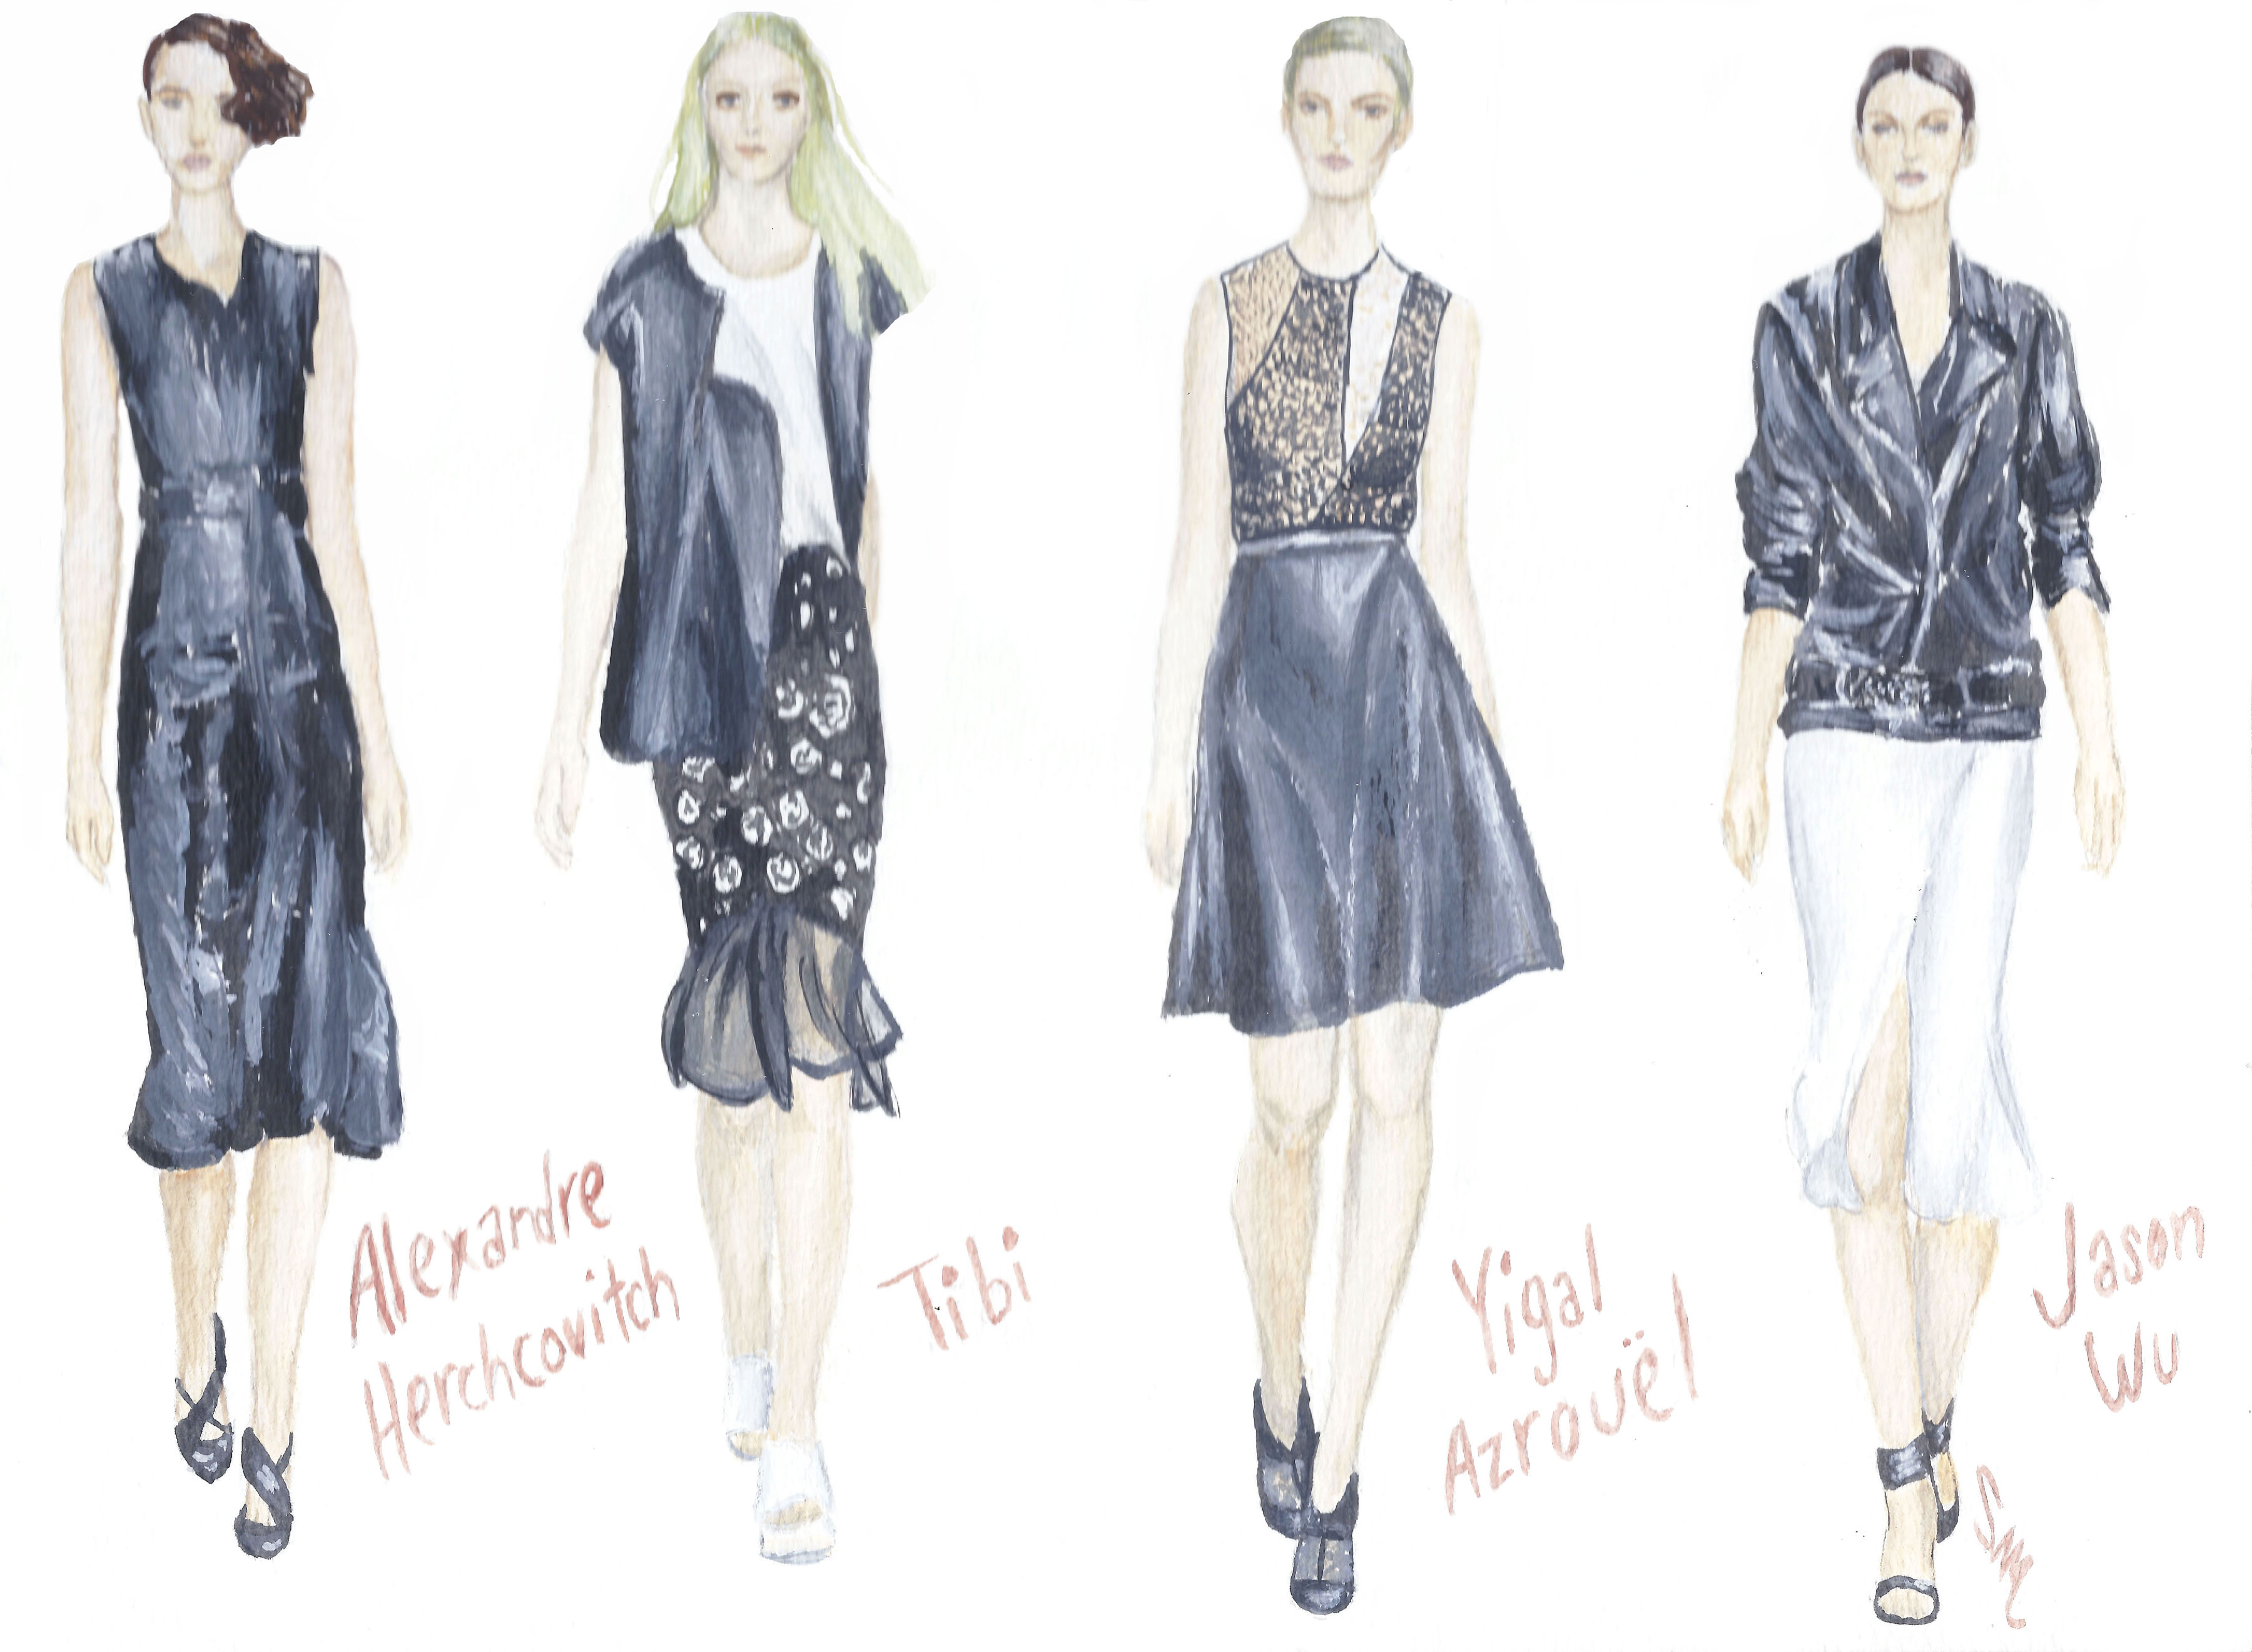 Lovely in Leather: Standout Looks from NYFW Spring RTW 2014 (Alexandre Herchcovitch, Tibi, Yigal Azrouël, Jason Wu)